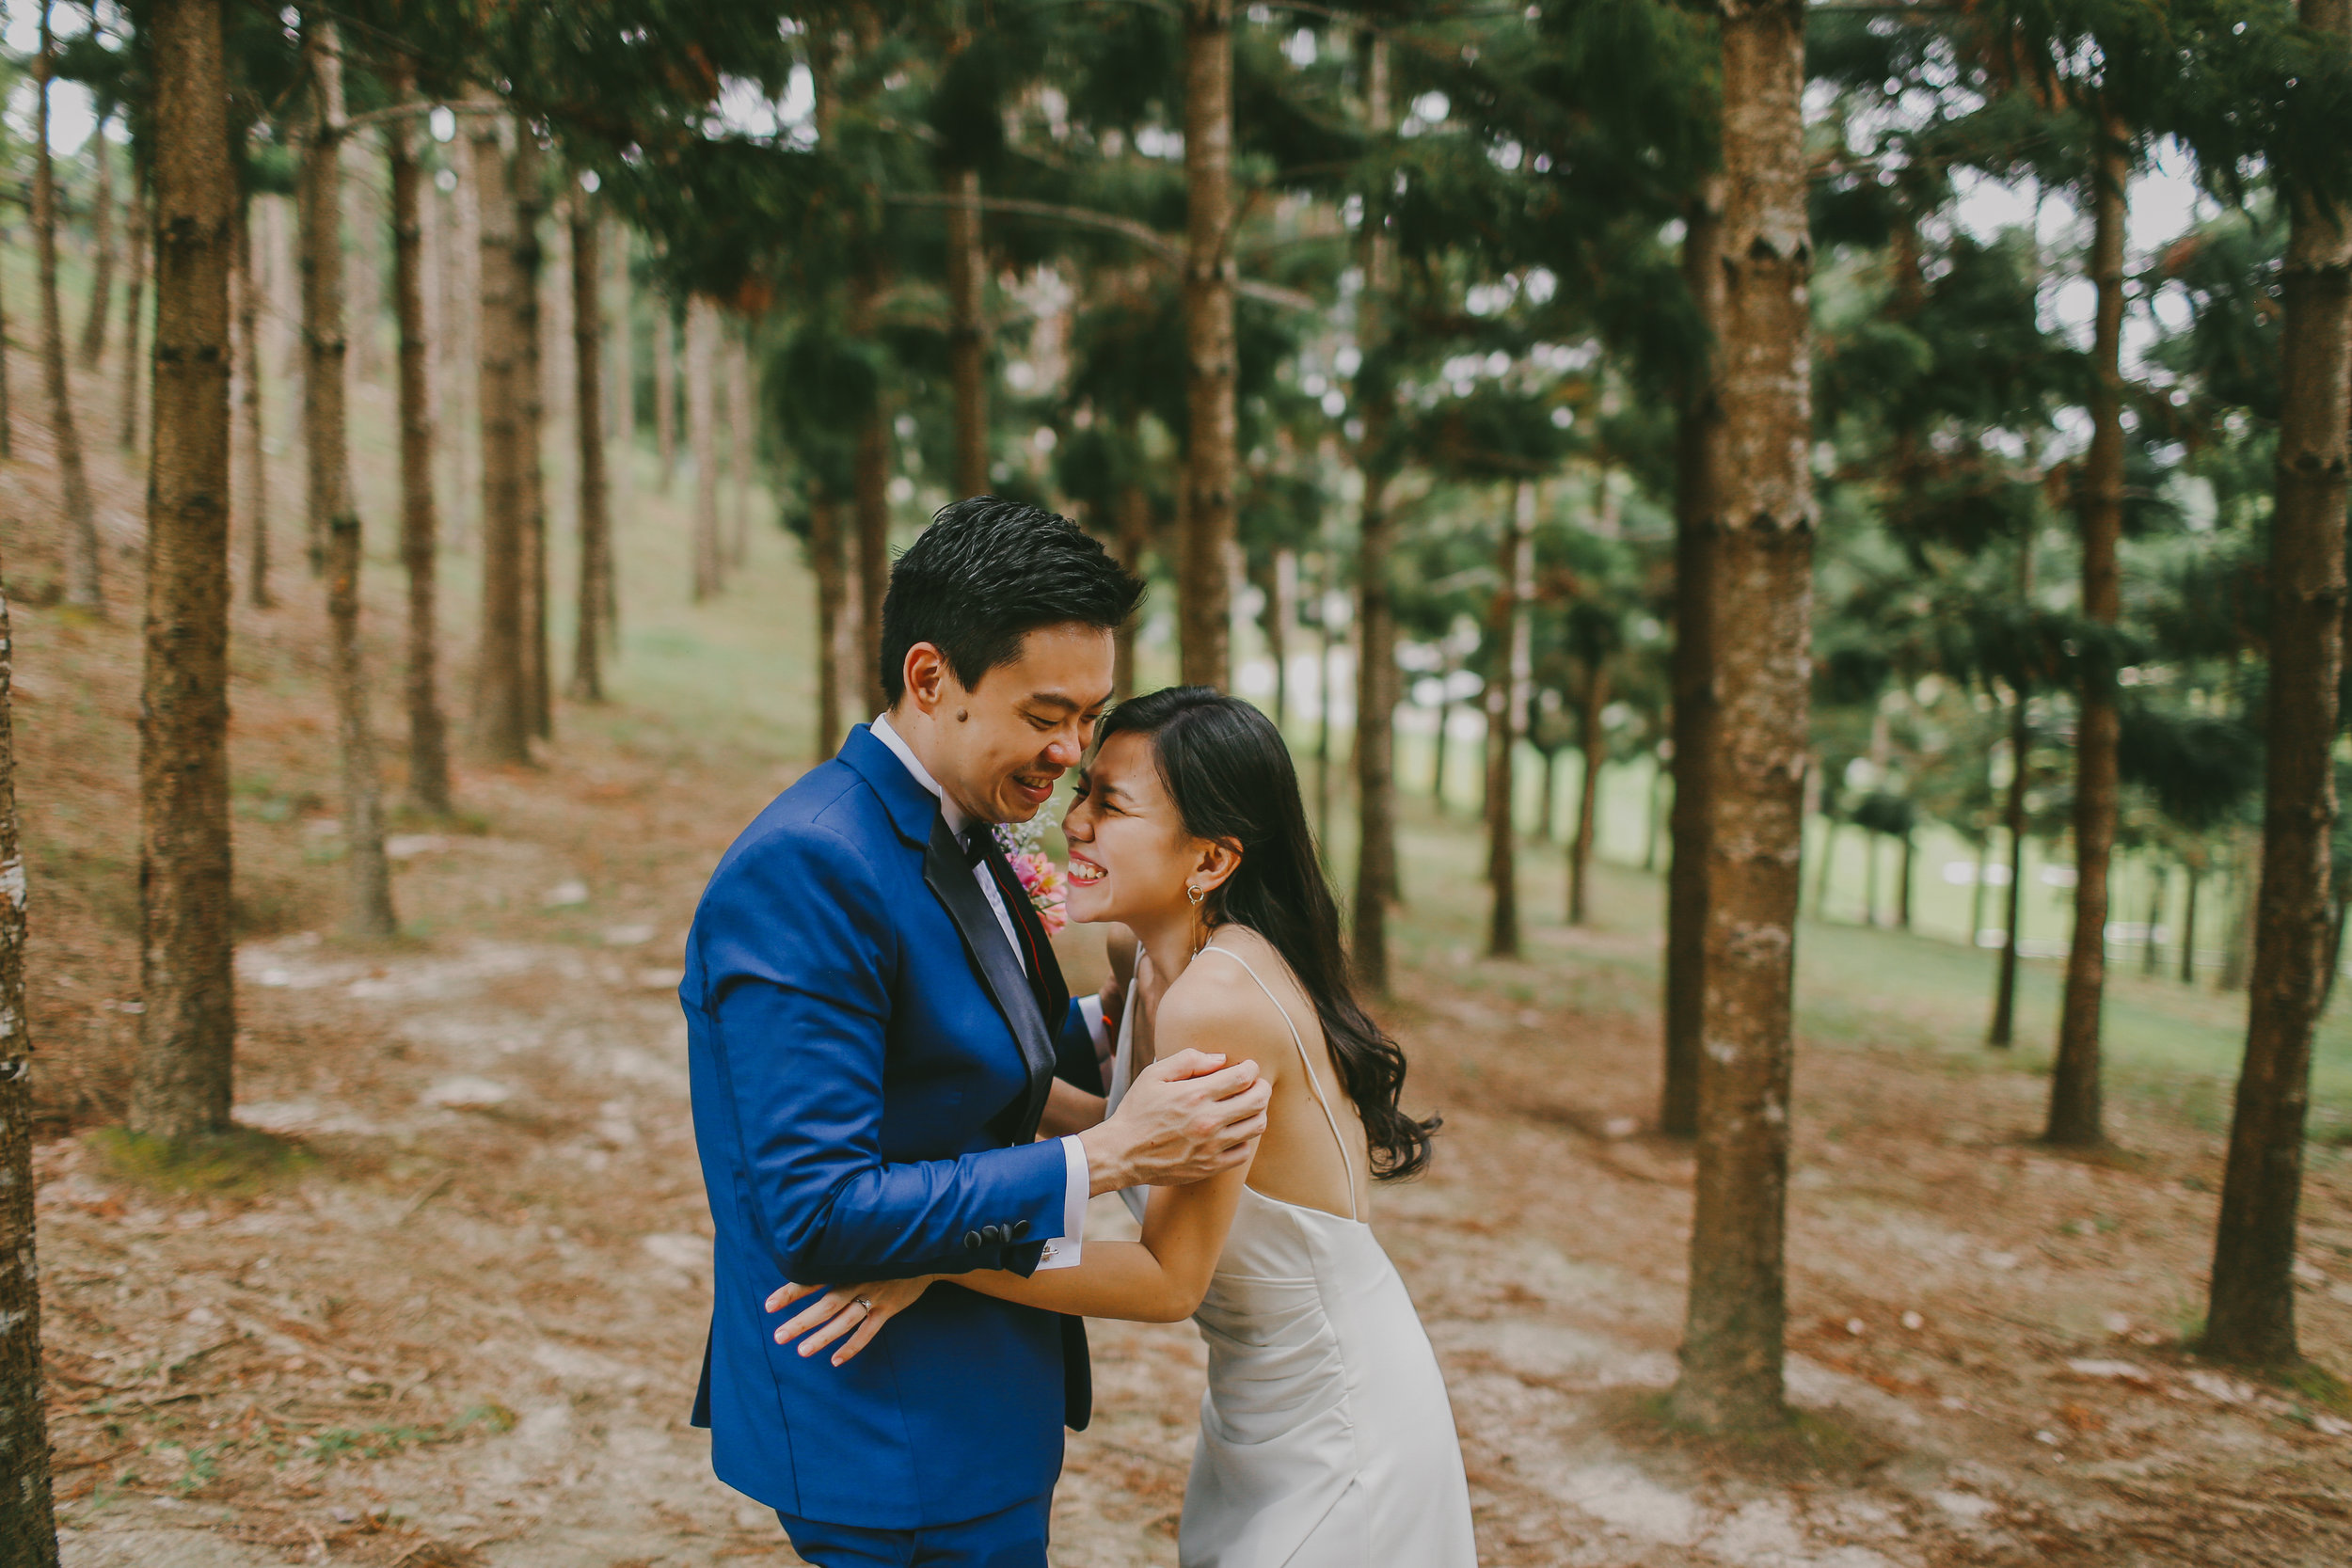 2019-Pre-wedding-numb9r-photography-highres-0720EE.jpg